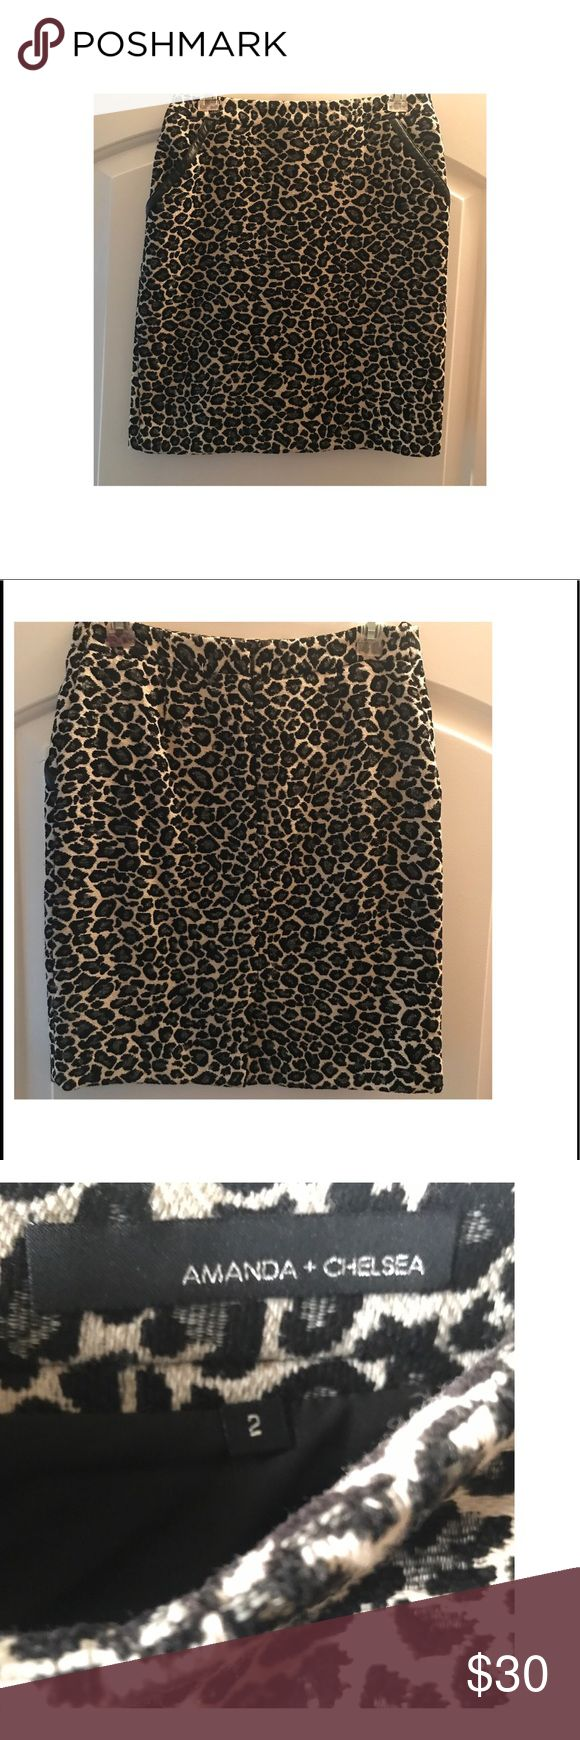 Leopard pencil skirt with leather accented pockets A perfect addition to your closet. This skirt can be worn at the office and a perfect transition piece for happy hour! Fits beautifully and the pockets give this piece an edgy luxurious vibe. Amanda & Chelsea Skirts Pencil